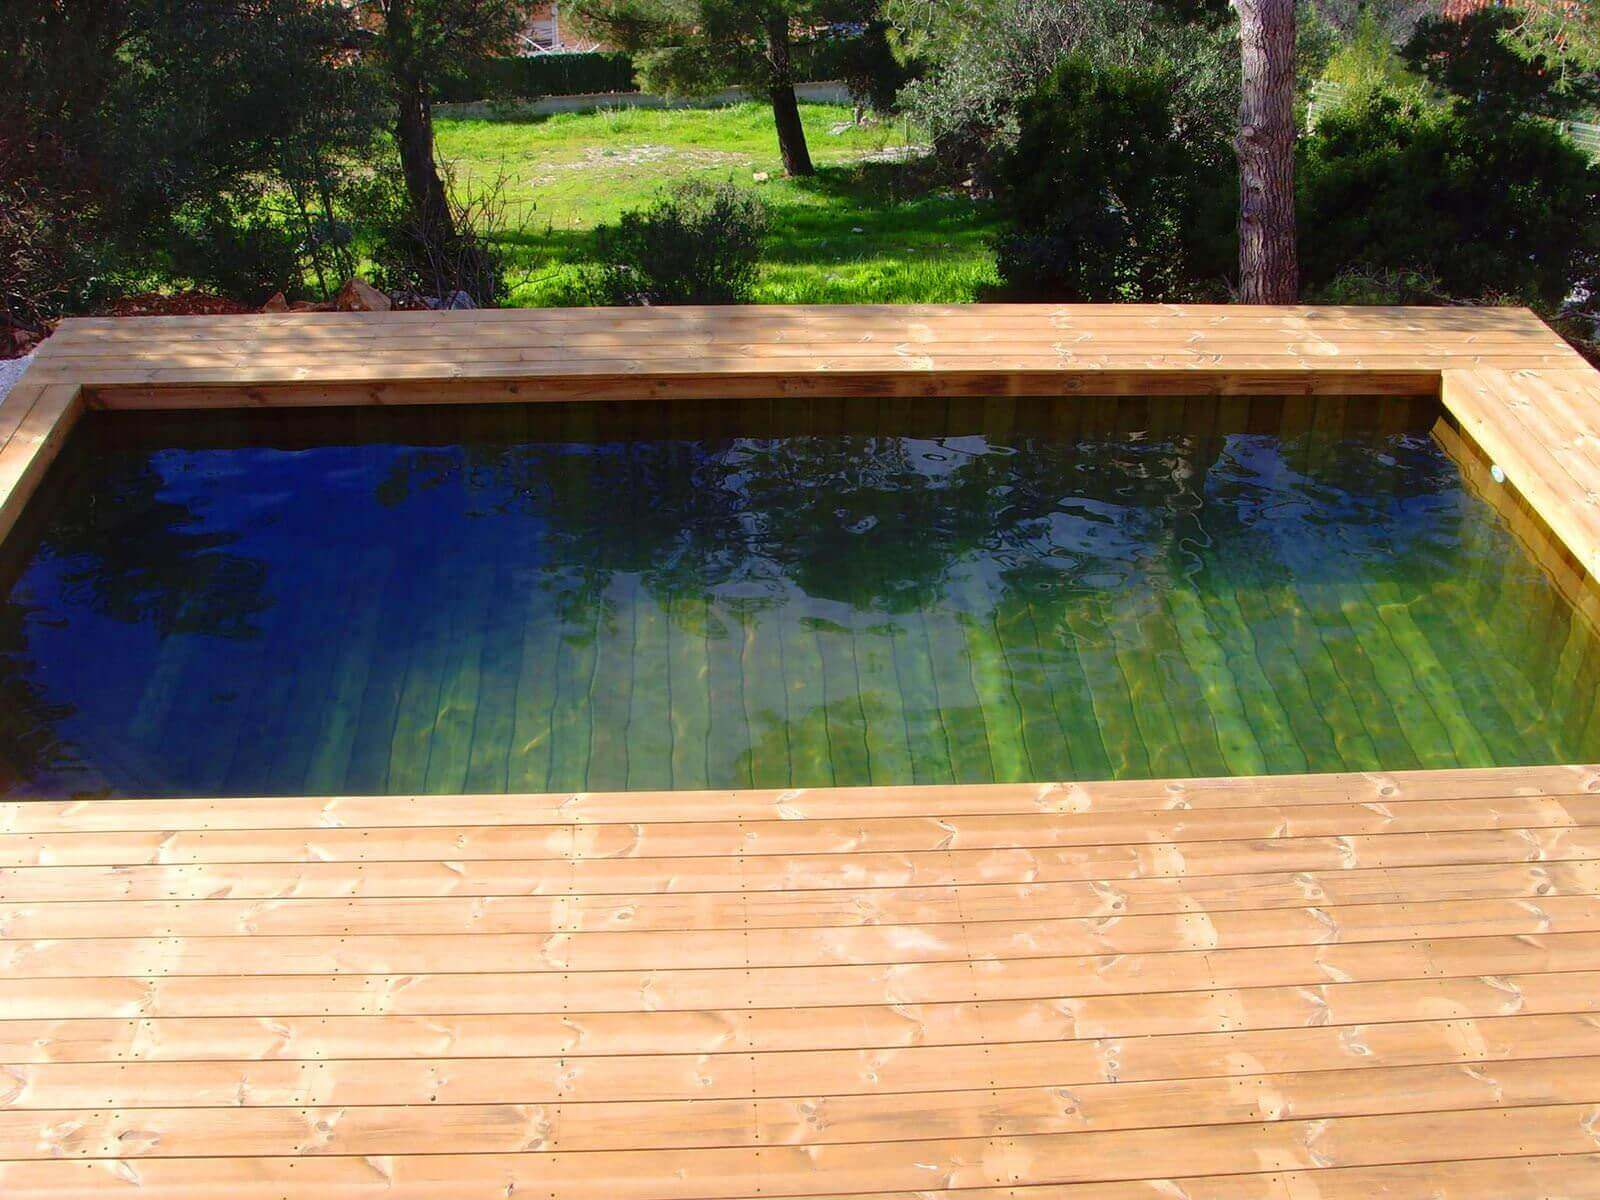 Photos de piscines en bois hors sol sur mesure sans liner for Piscine demontable bois